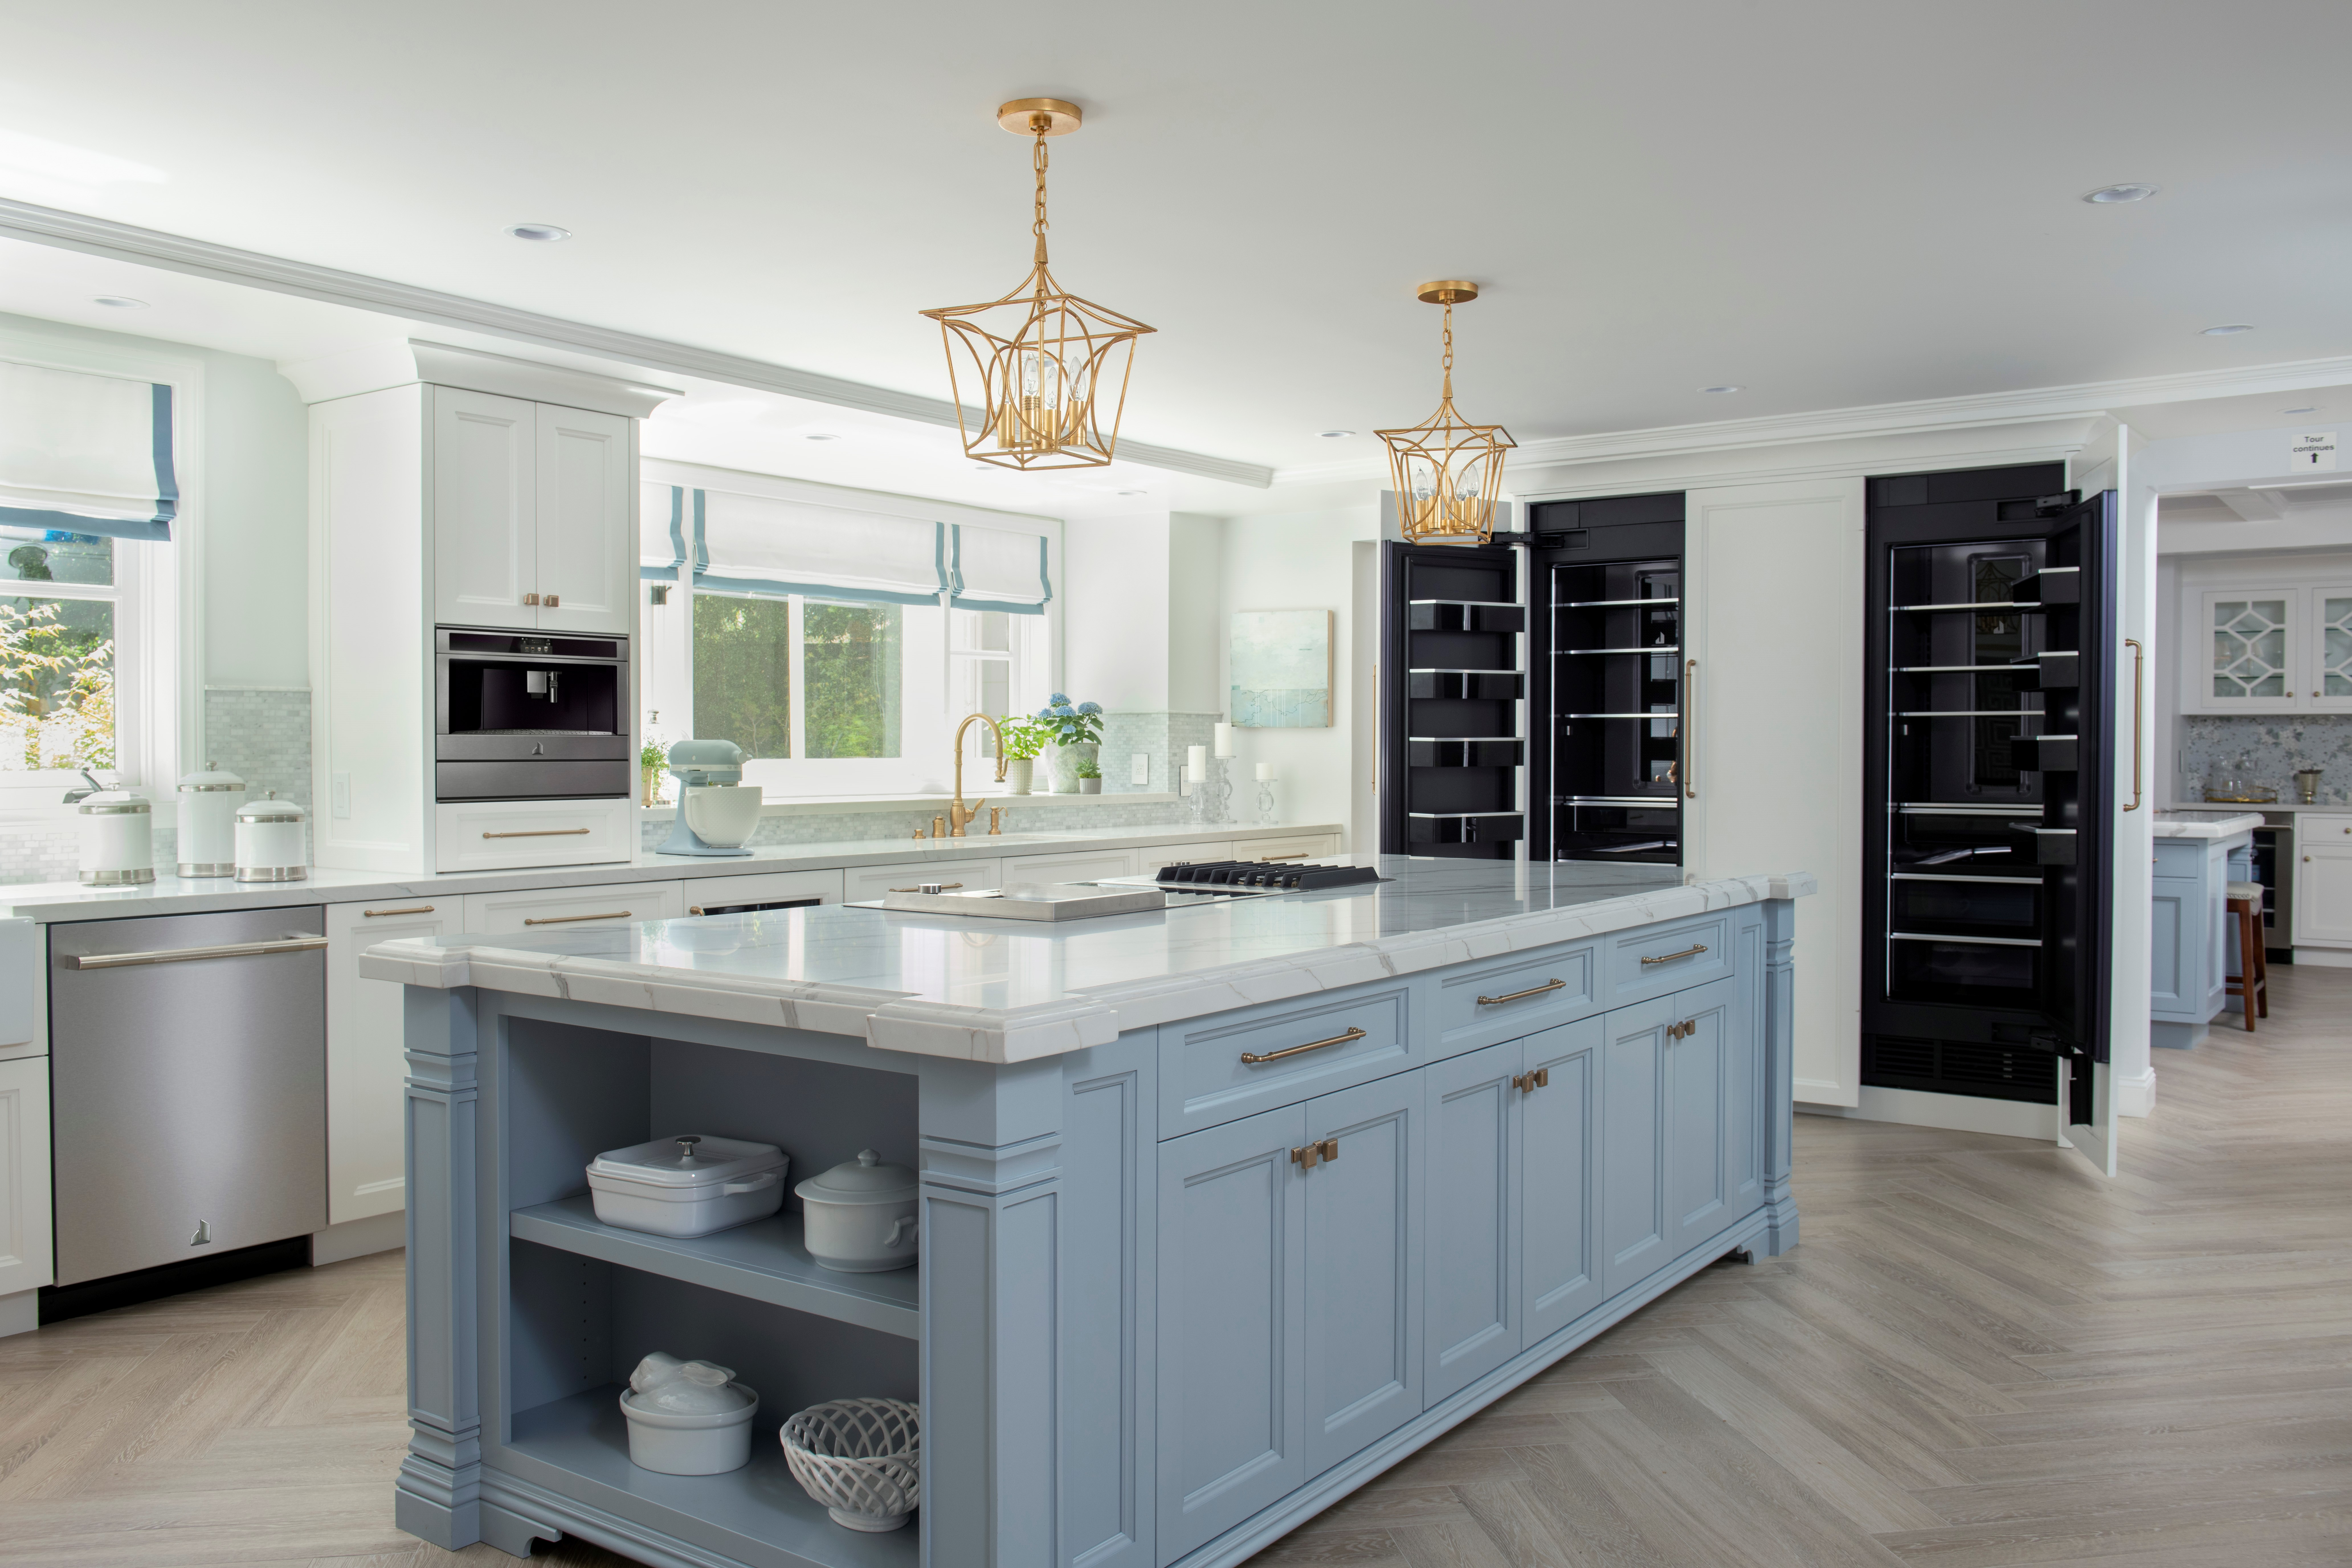 modern kitchen design with full suite of Jenn-Air appliances